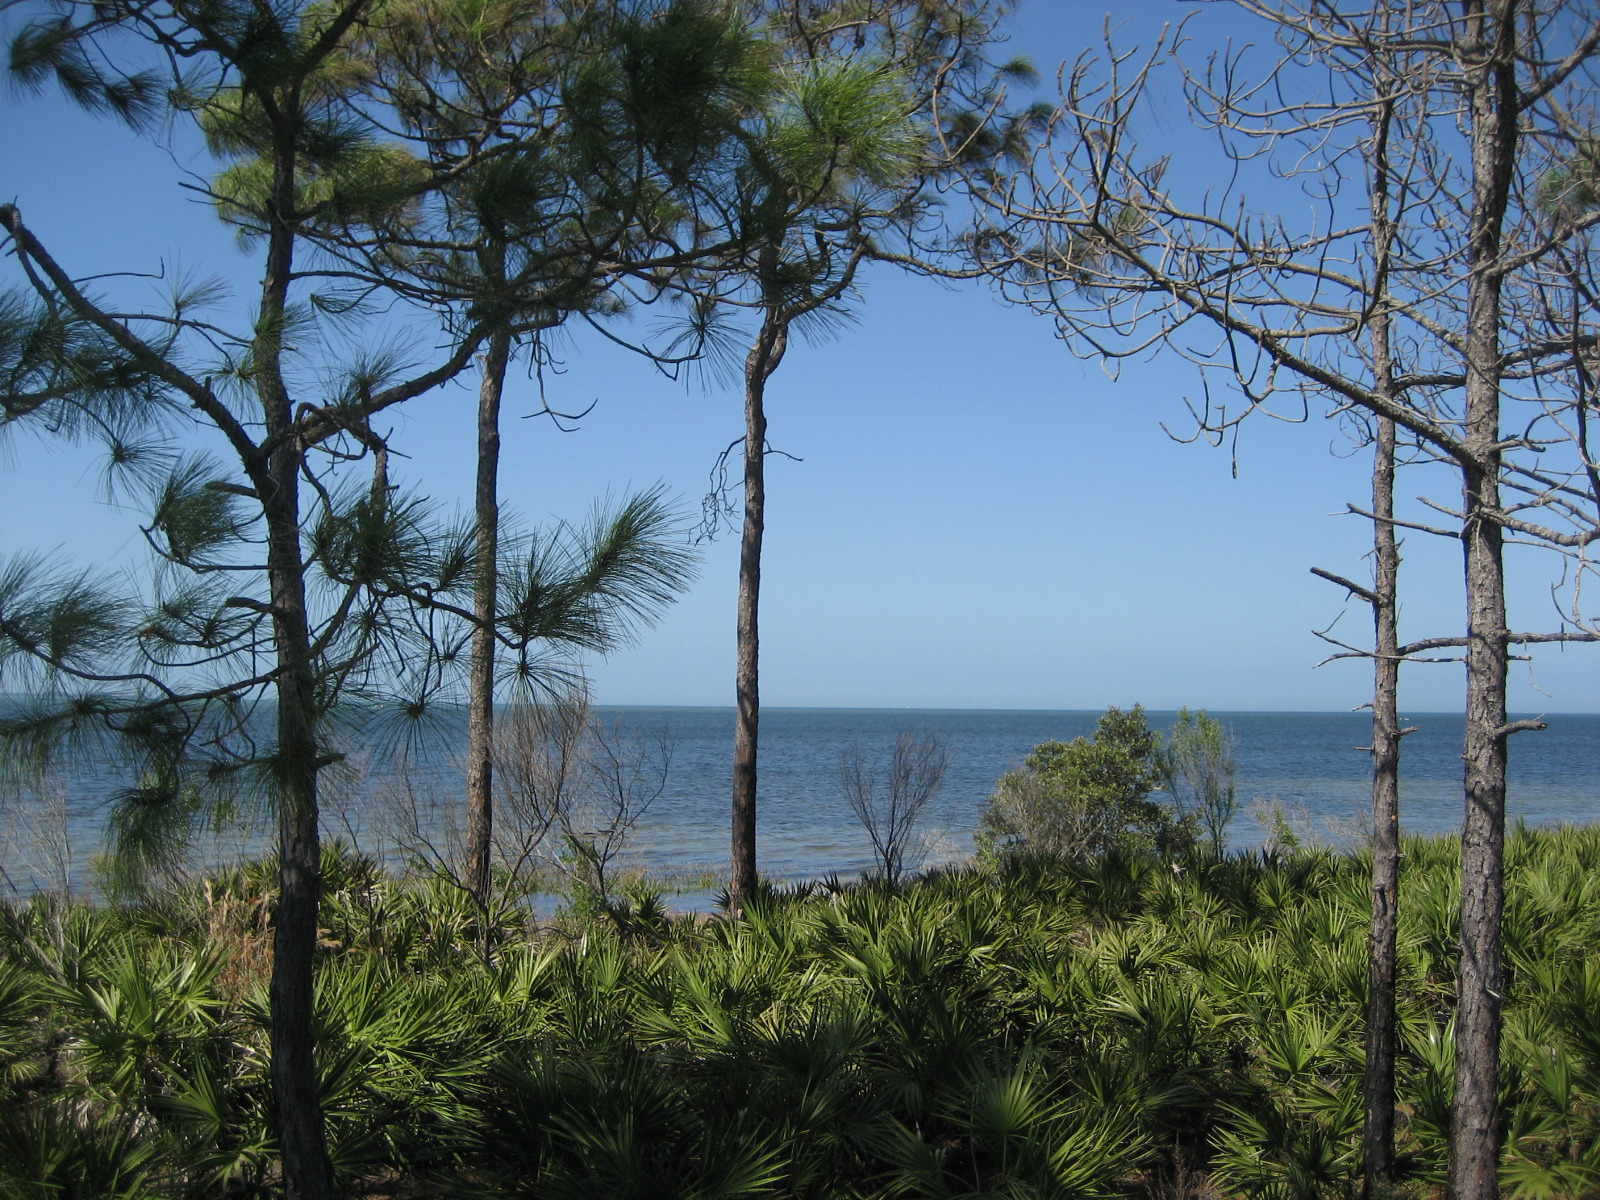 View of Gulf of Mexico